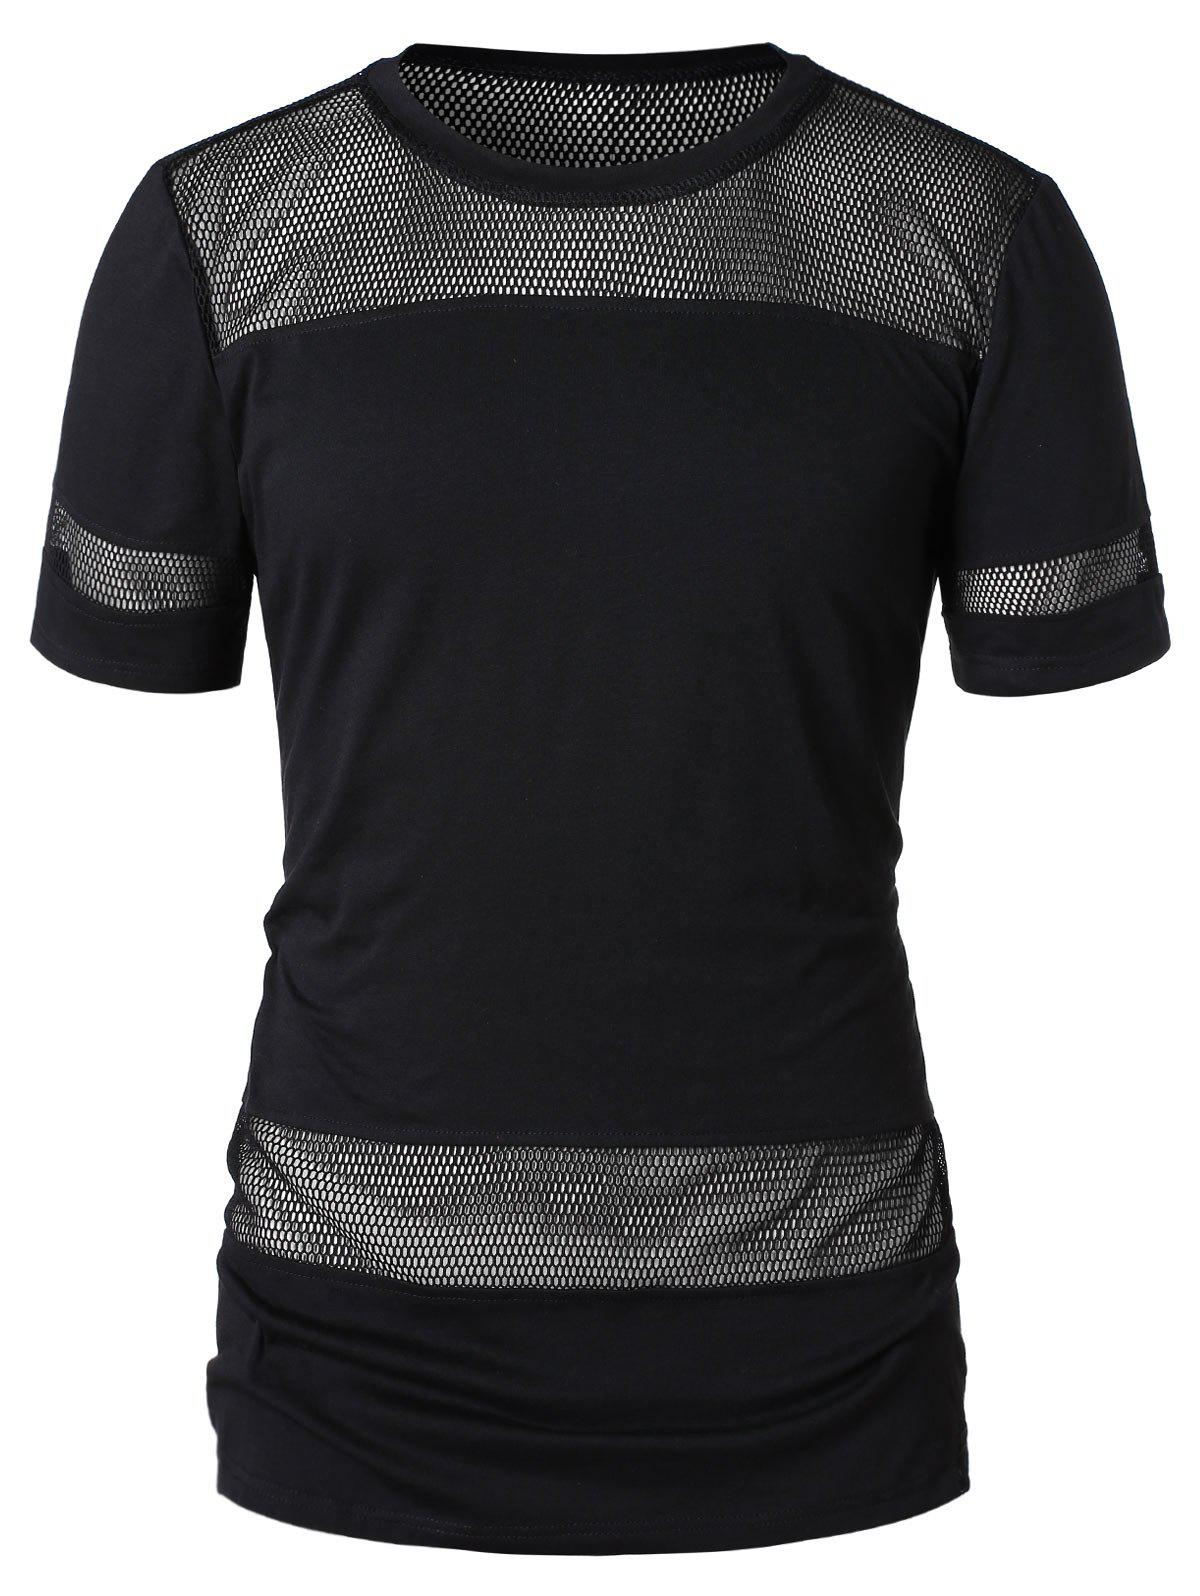 Short Sleeve Mesh Panel T-shirt - BLACK 2XL